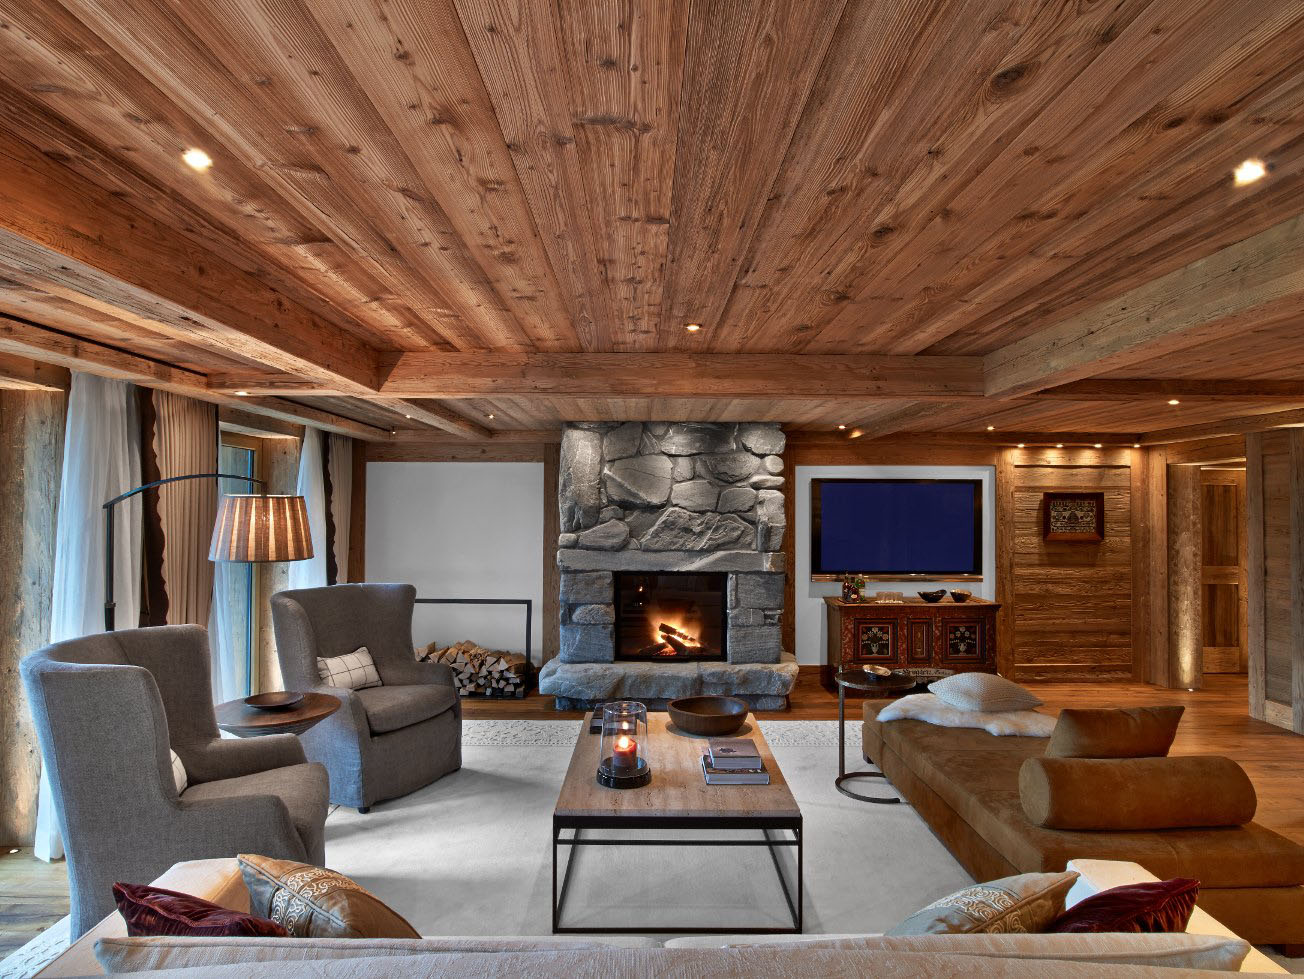 Contemporary Rustic Elegant Interior Design